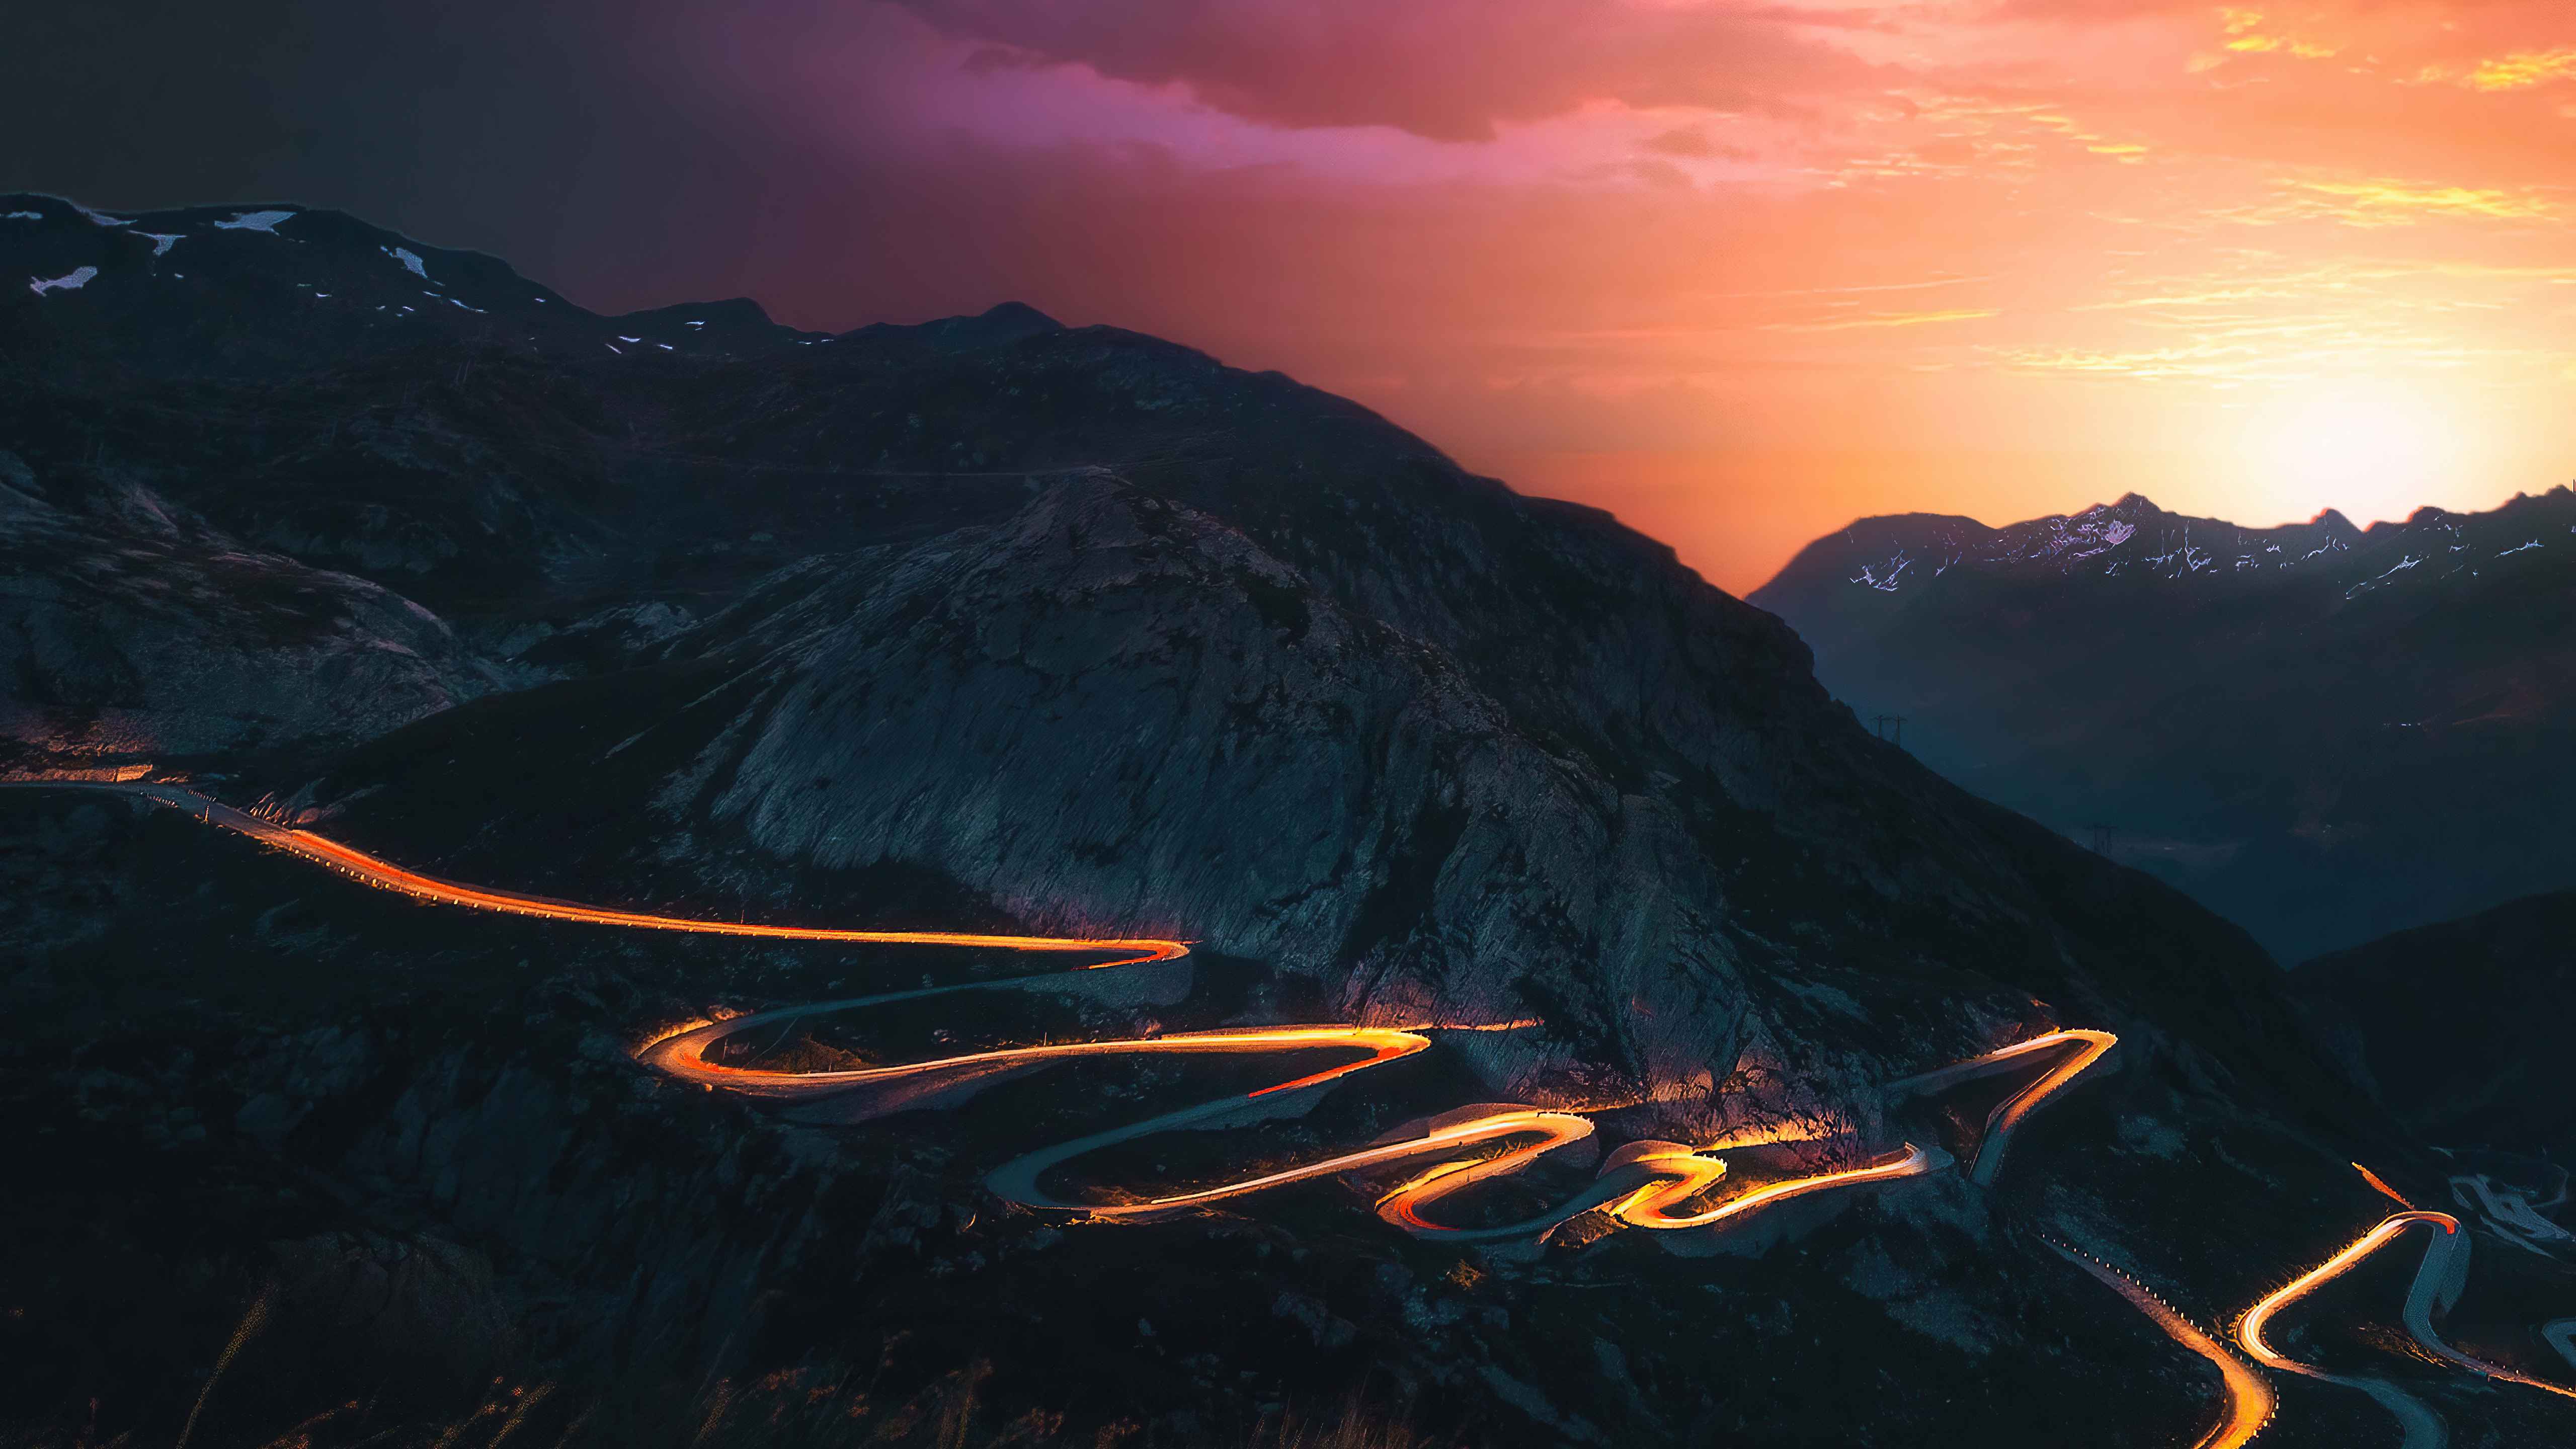 sunset trails mountains road long exposure 4k 1615197744 - Sunset Trails Mountains Road Long Exposure 4k - Sunset Trails Mountains Road Long Exposure 4k wallpapers